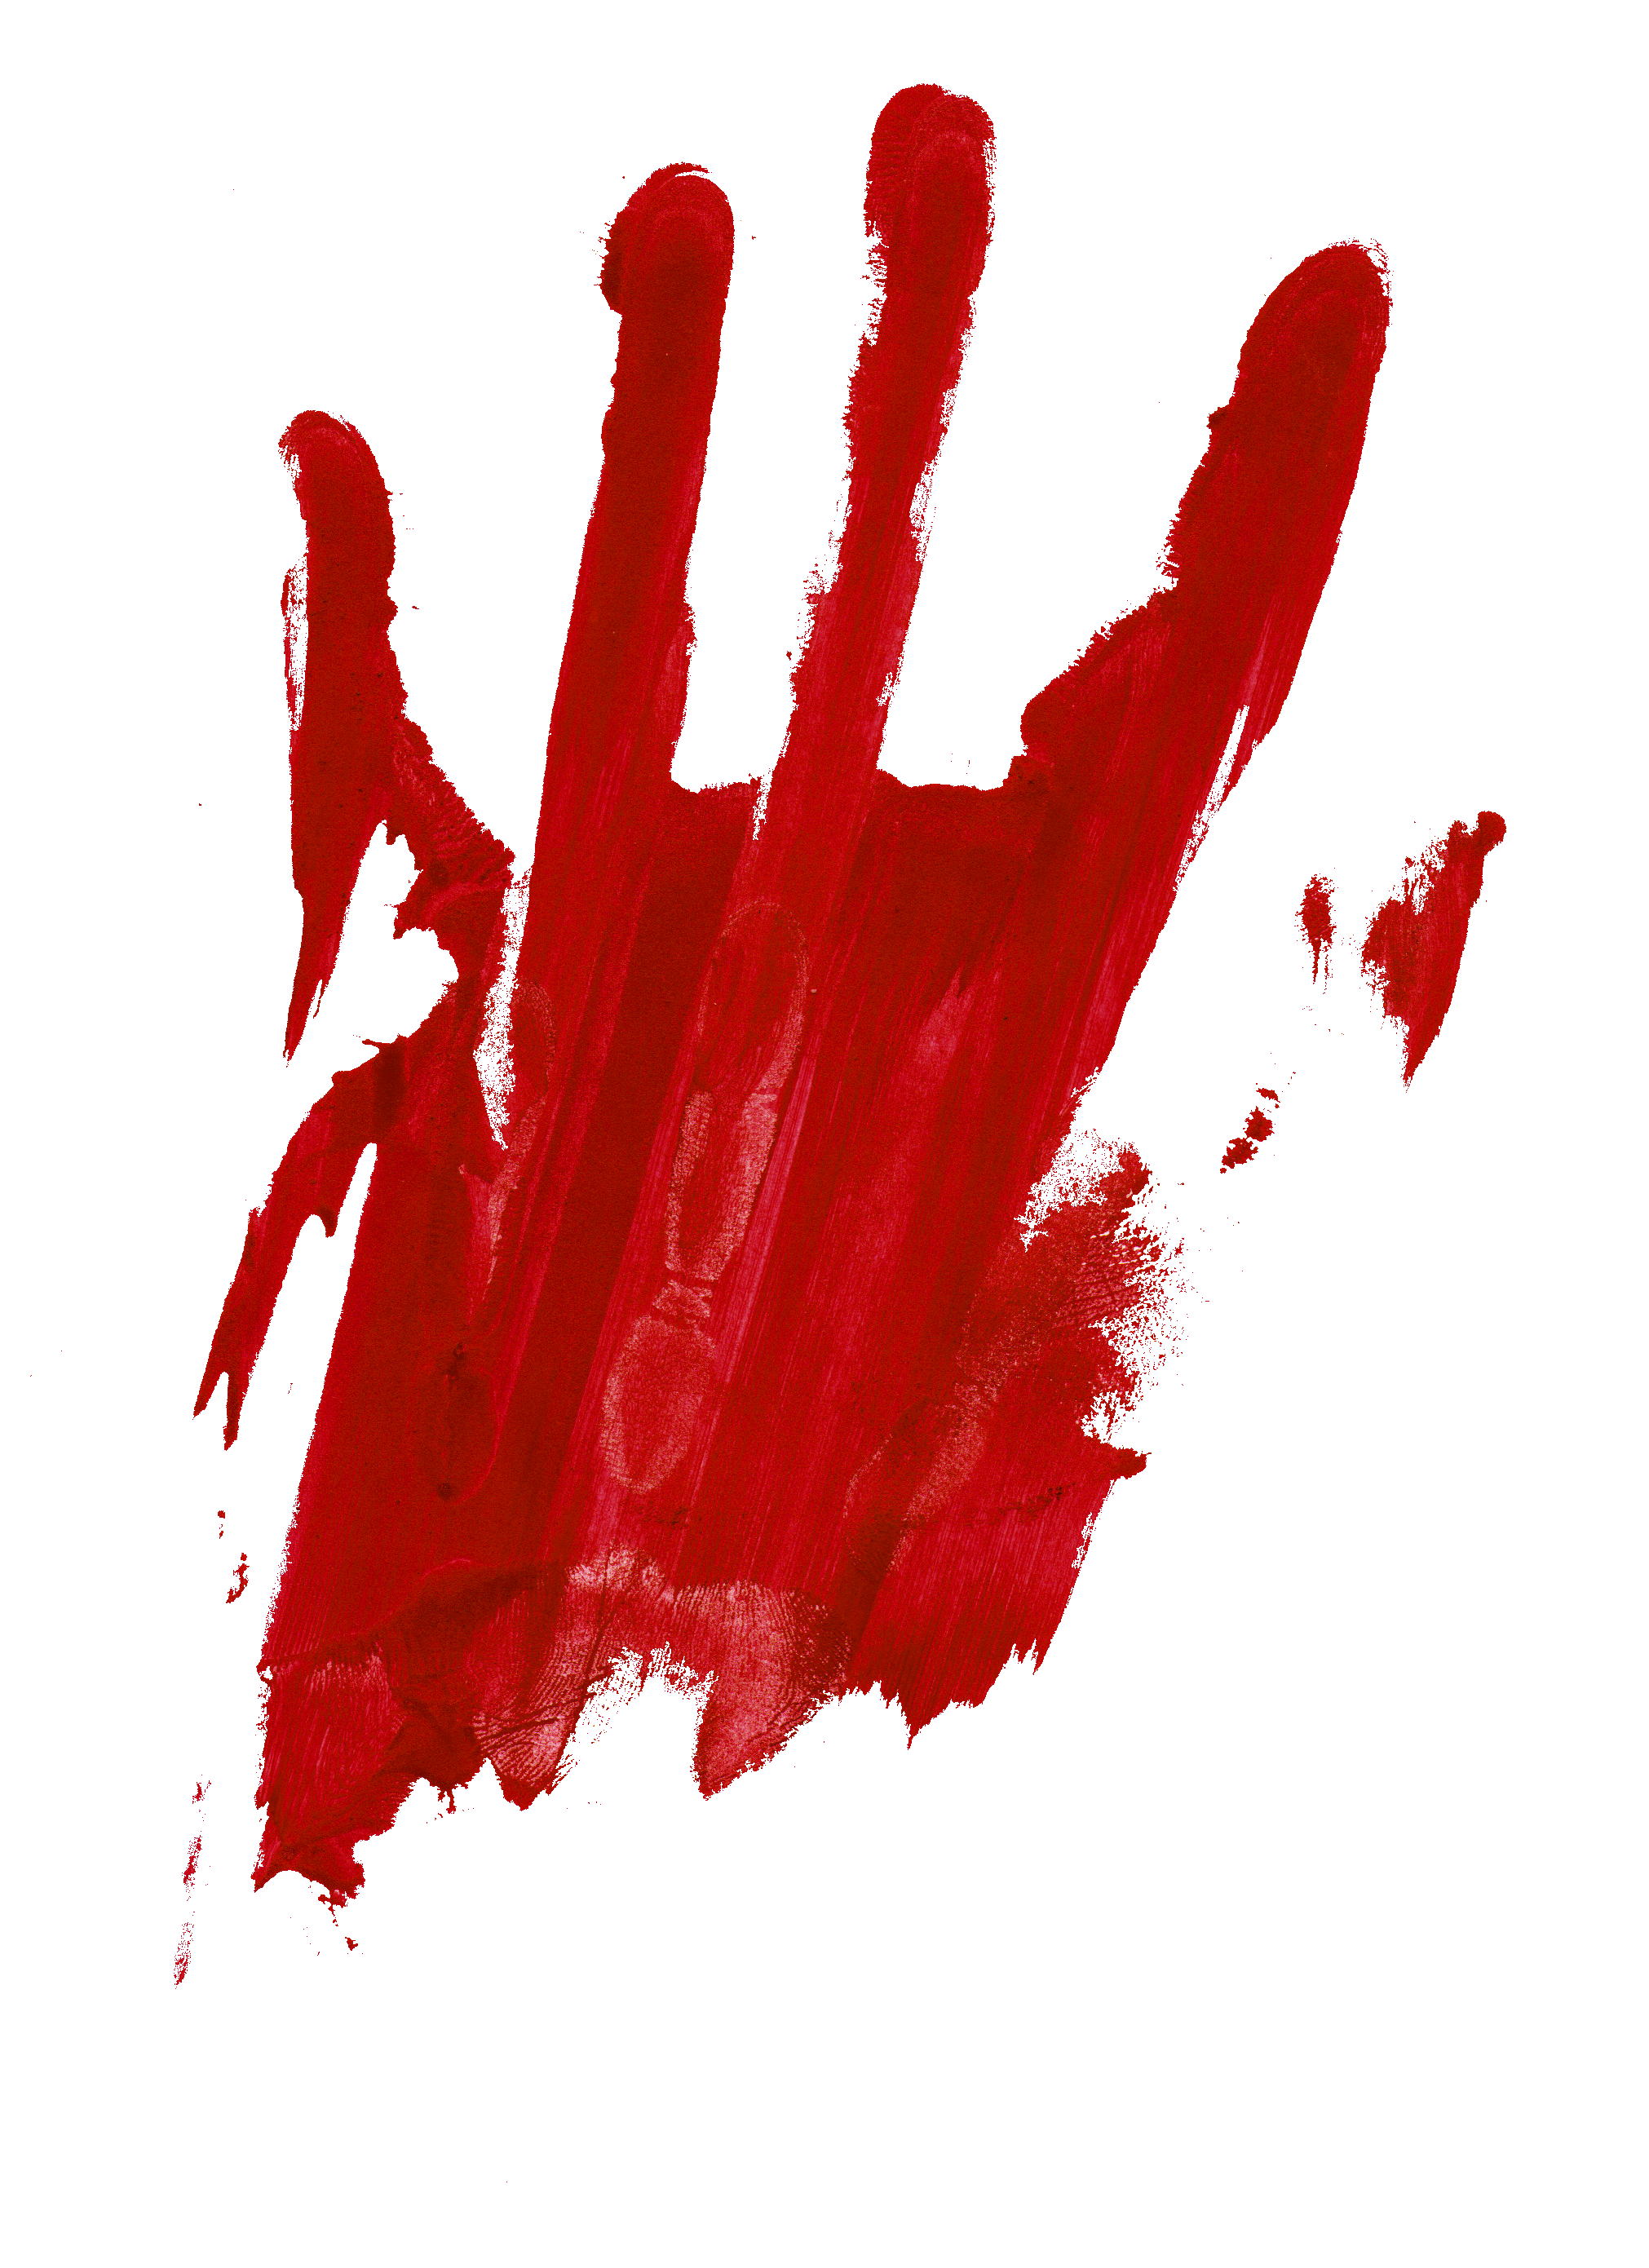 http://zeds-stock.deviantart.com/art/Bloody-Hand-Prints-Pack-131669084